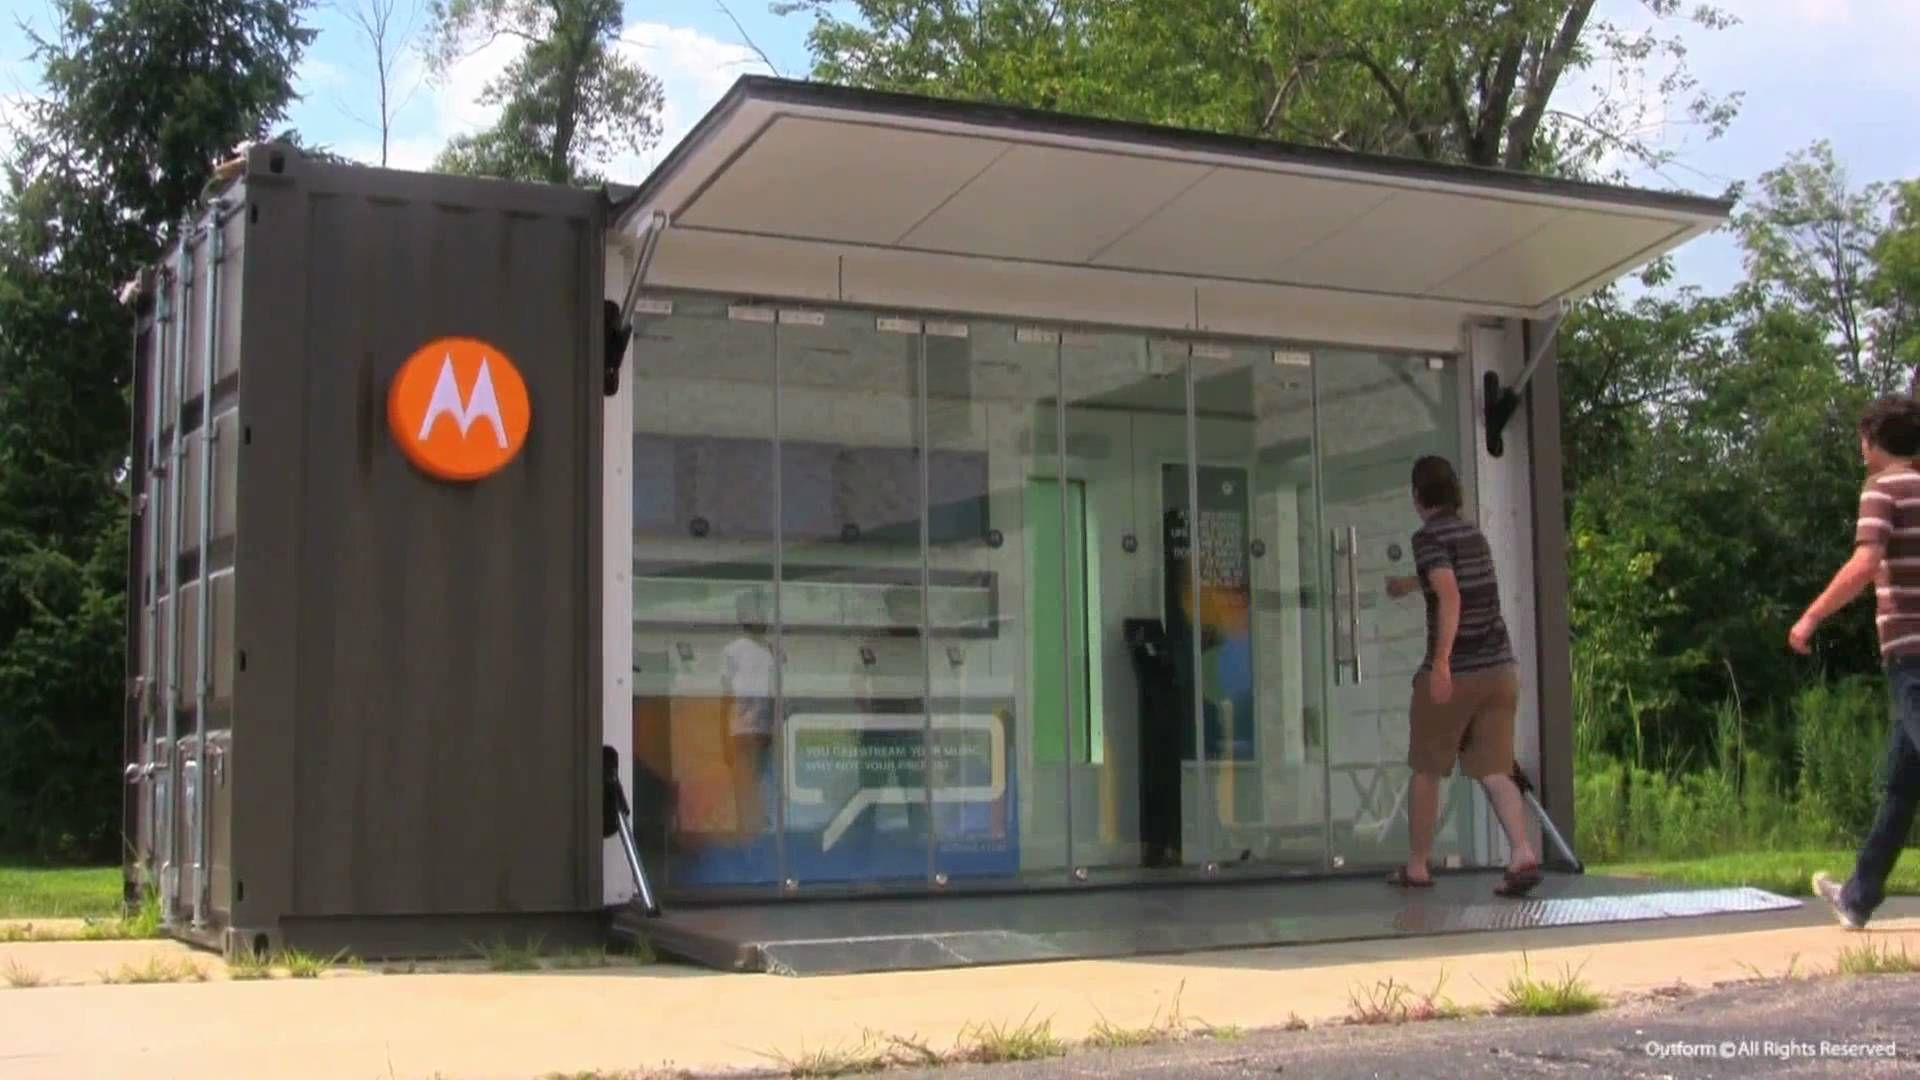 Shipping container homes youtube on pinterest shipping containers - House Motorola Container Shop 20ft Containercontainer Shopshipping Container Storeshipping Containersyoutubevanbedroomstarbuckstoilets